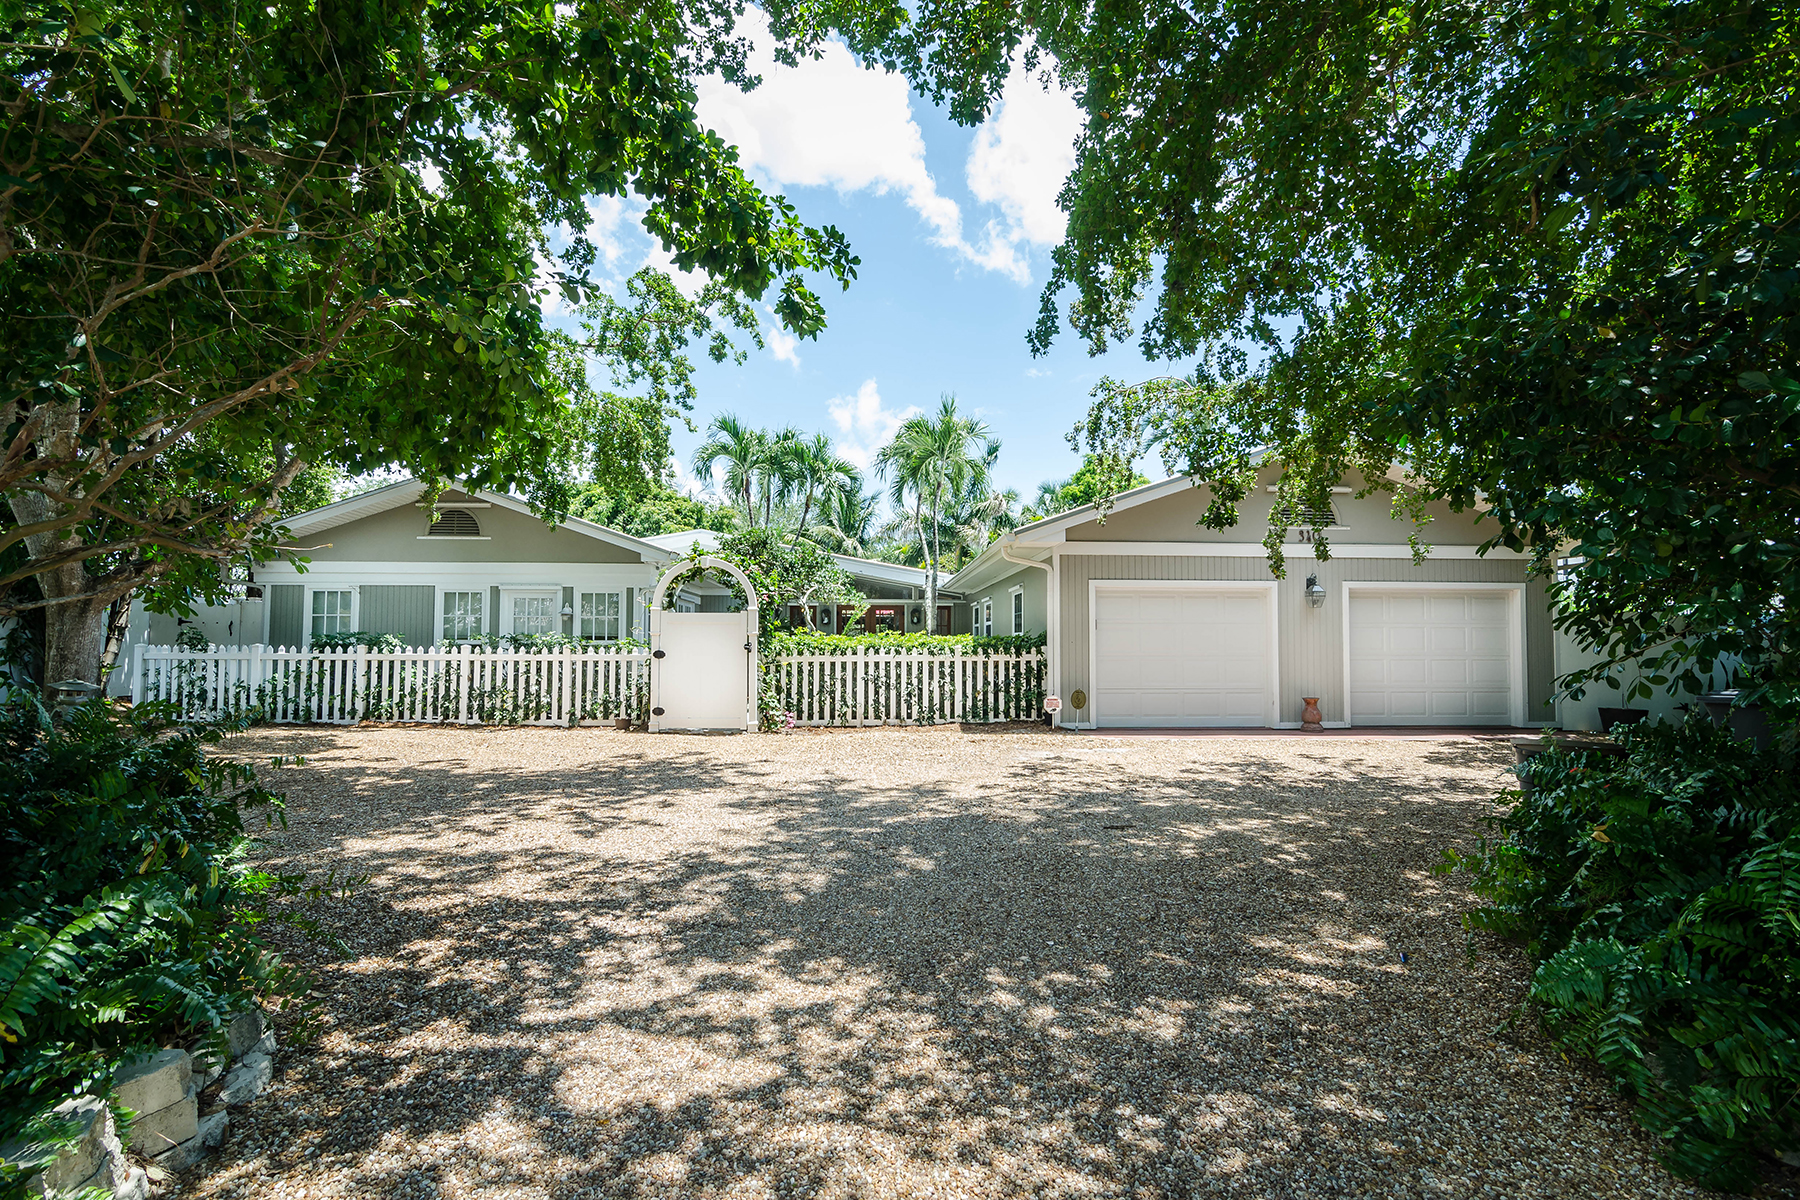 Single Family Home for Sale at OLDE NAPLES 340 7th Ave N, Naples, Florida 34102 United States